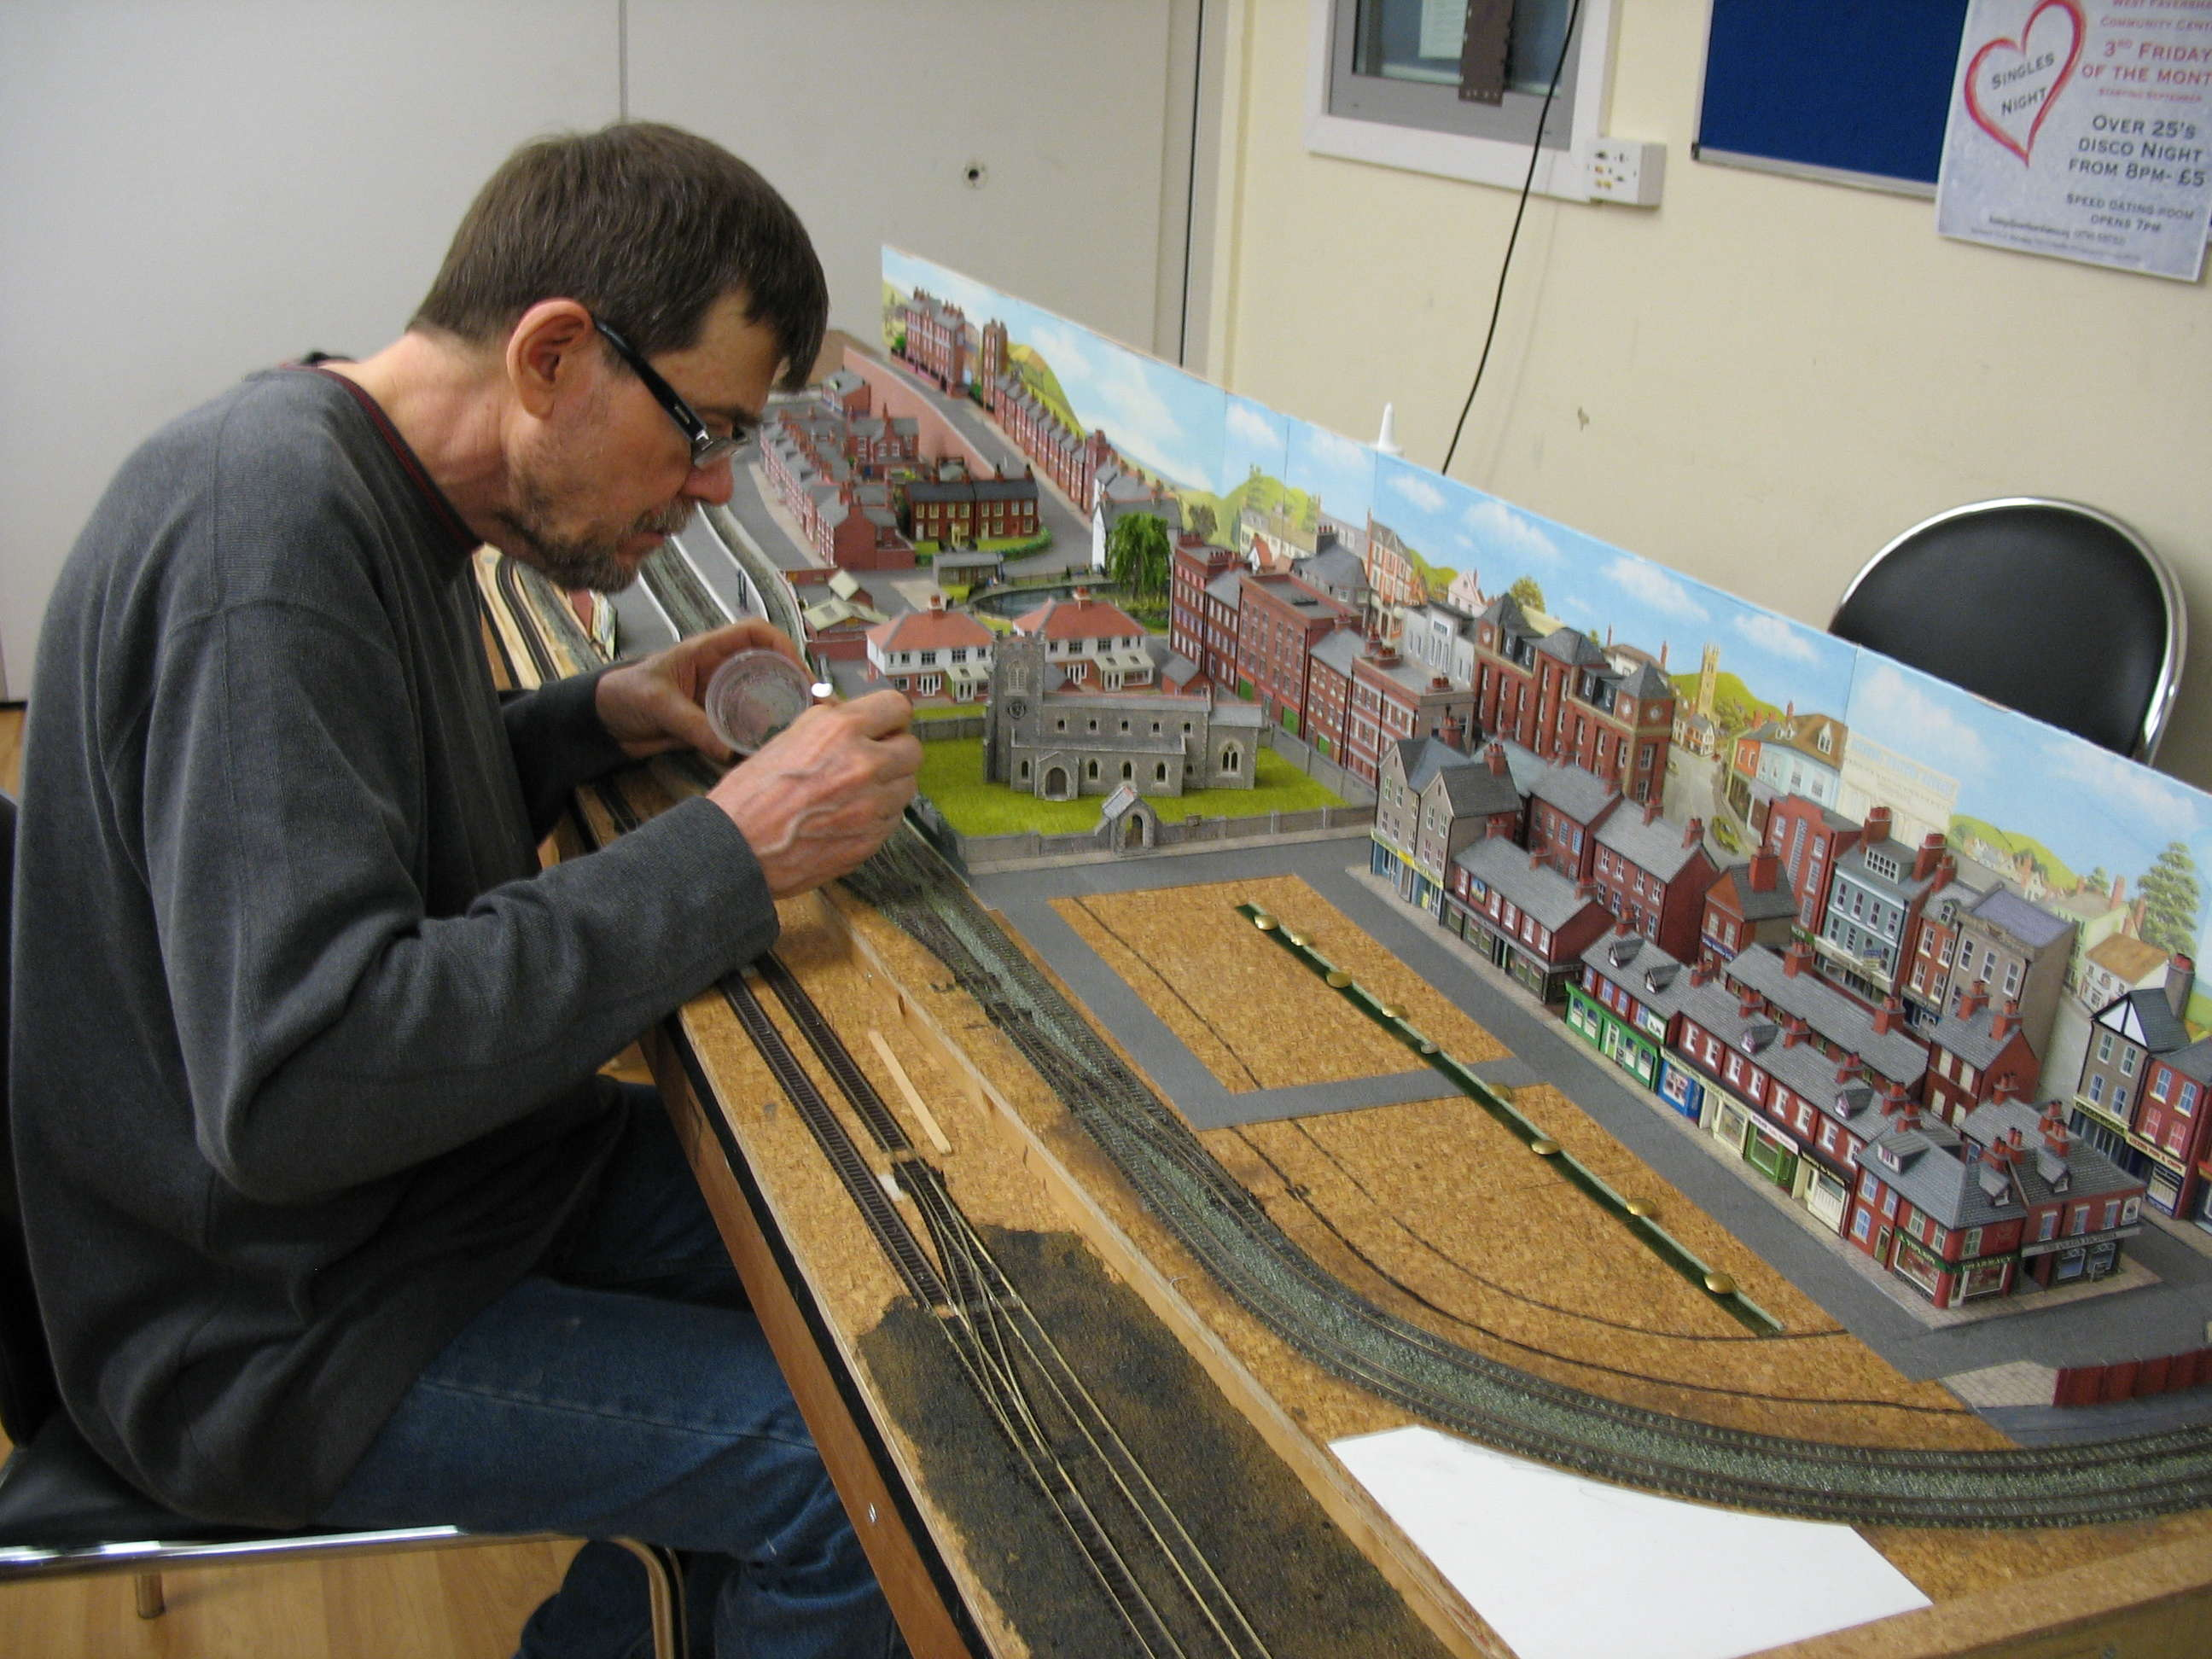 Scenic detailing work on OSP&WL layout